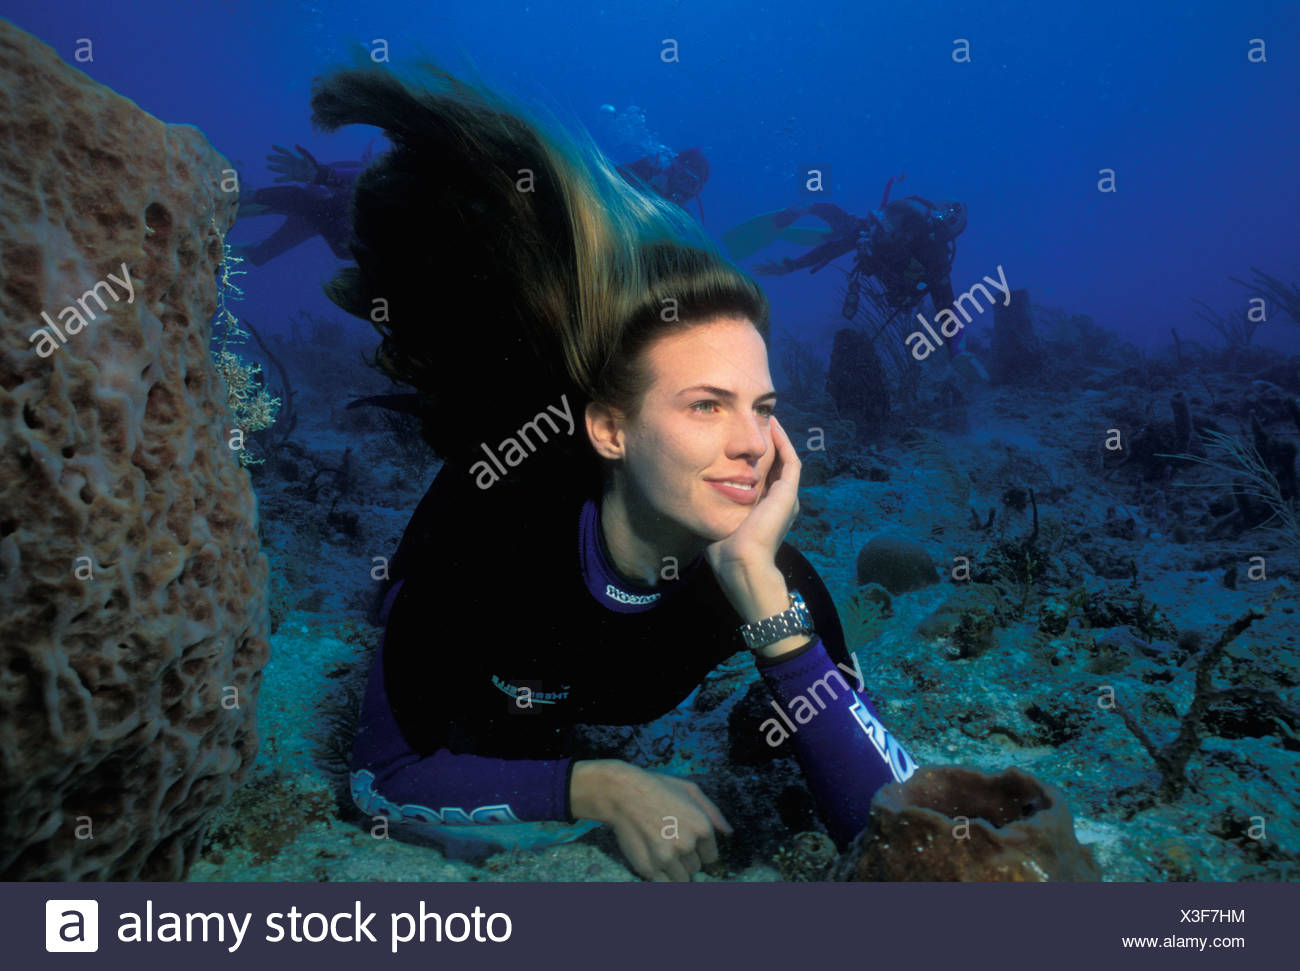 MEHGAN HEANEY GRIER FEMALE FREE DIVER IN KEY LARGO FLORIDA - Stock Image